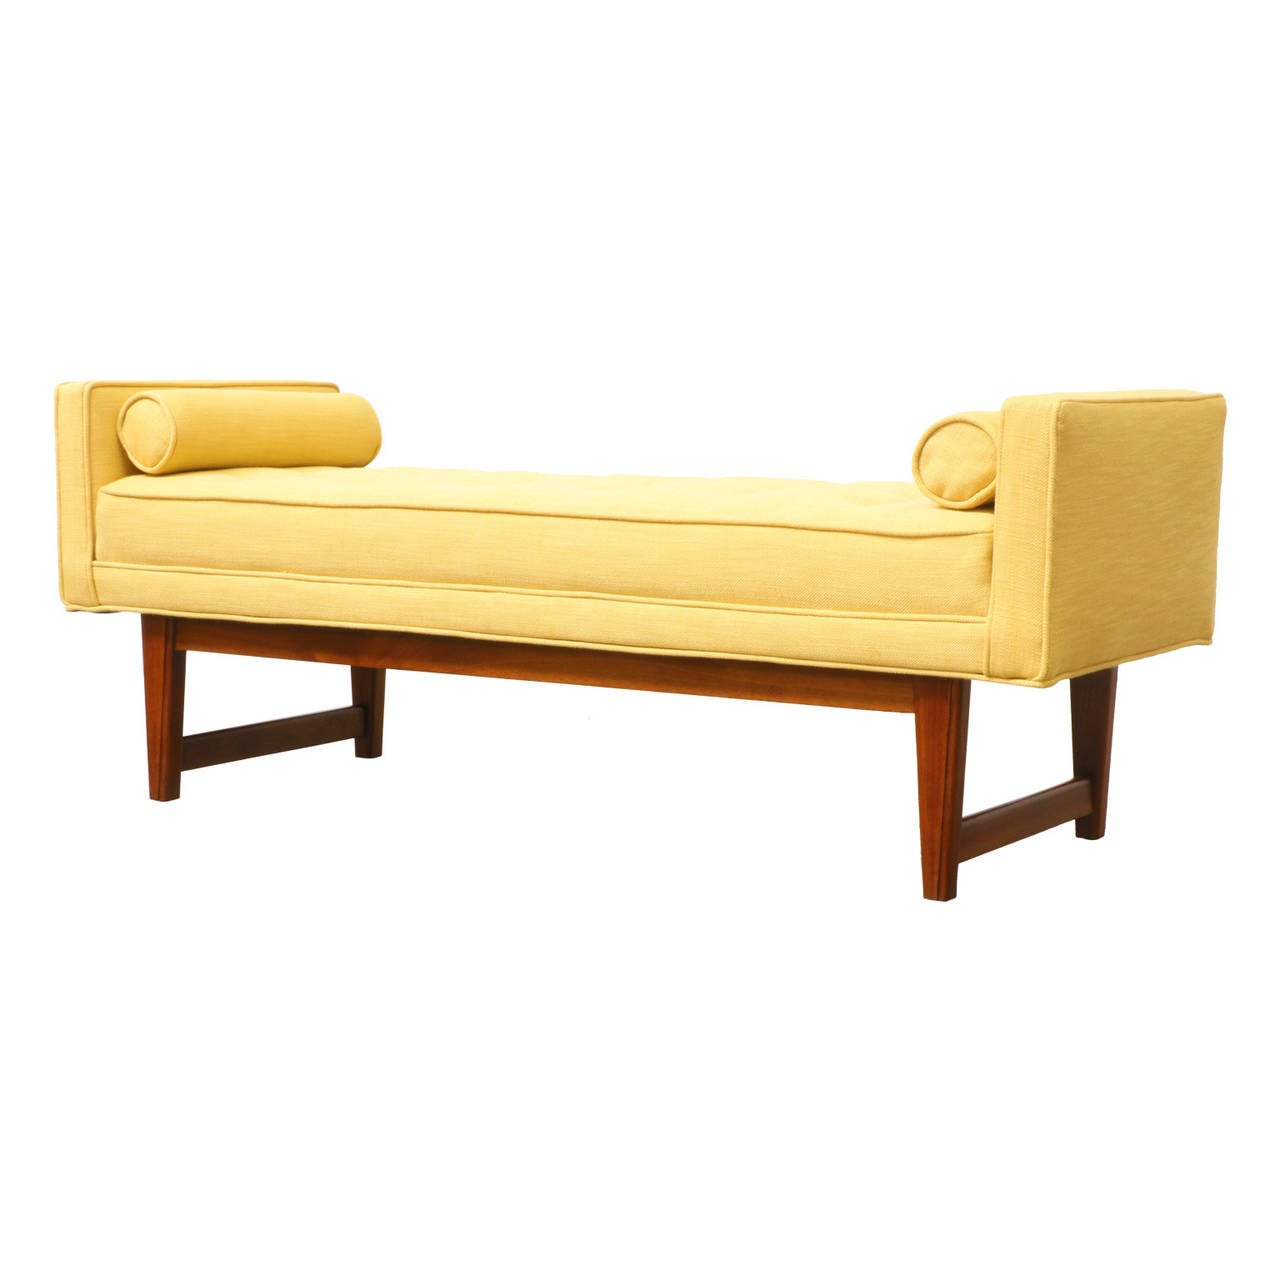 Mid Century Modern Benches 28 Images Mid Century Modern Entryway Bench Target Mid Century